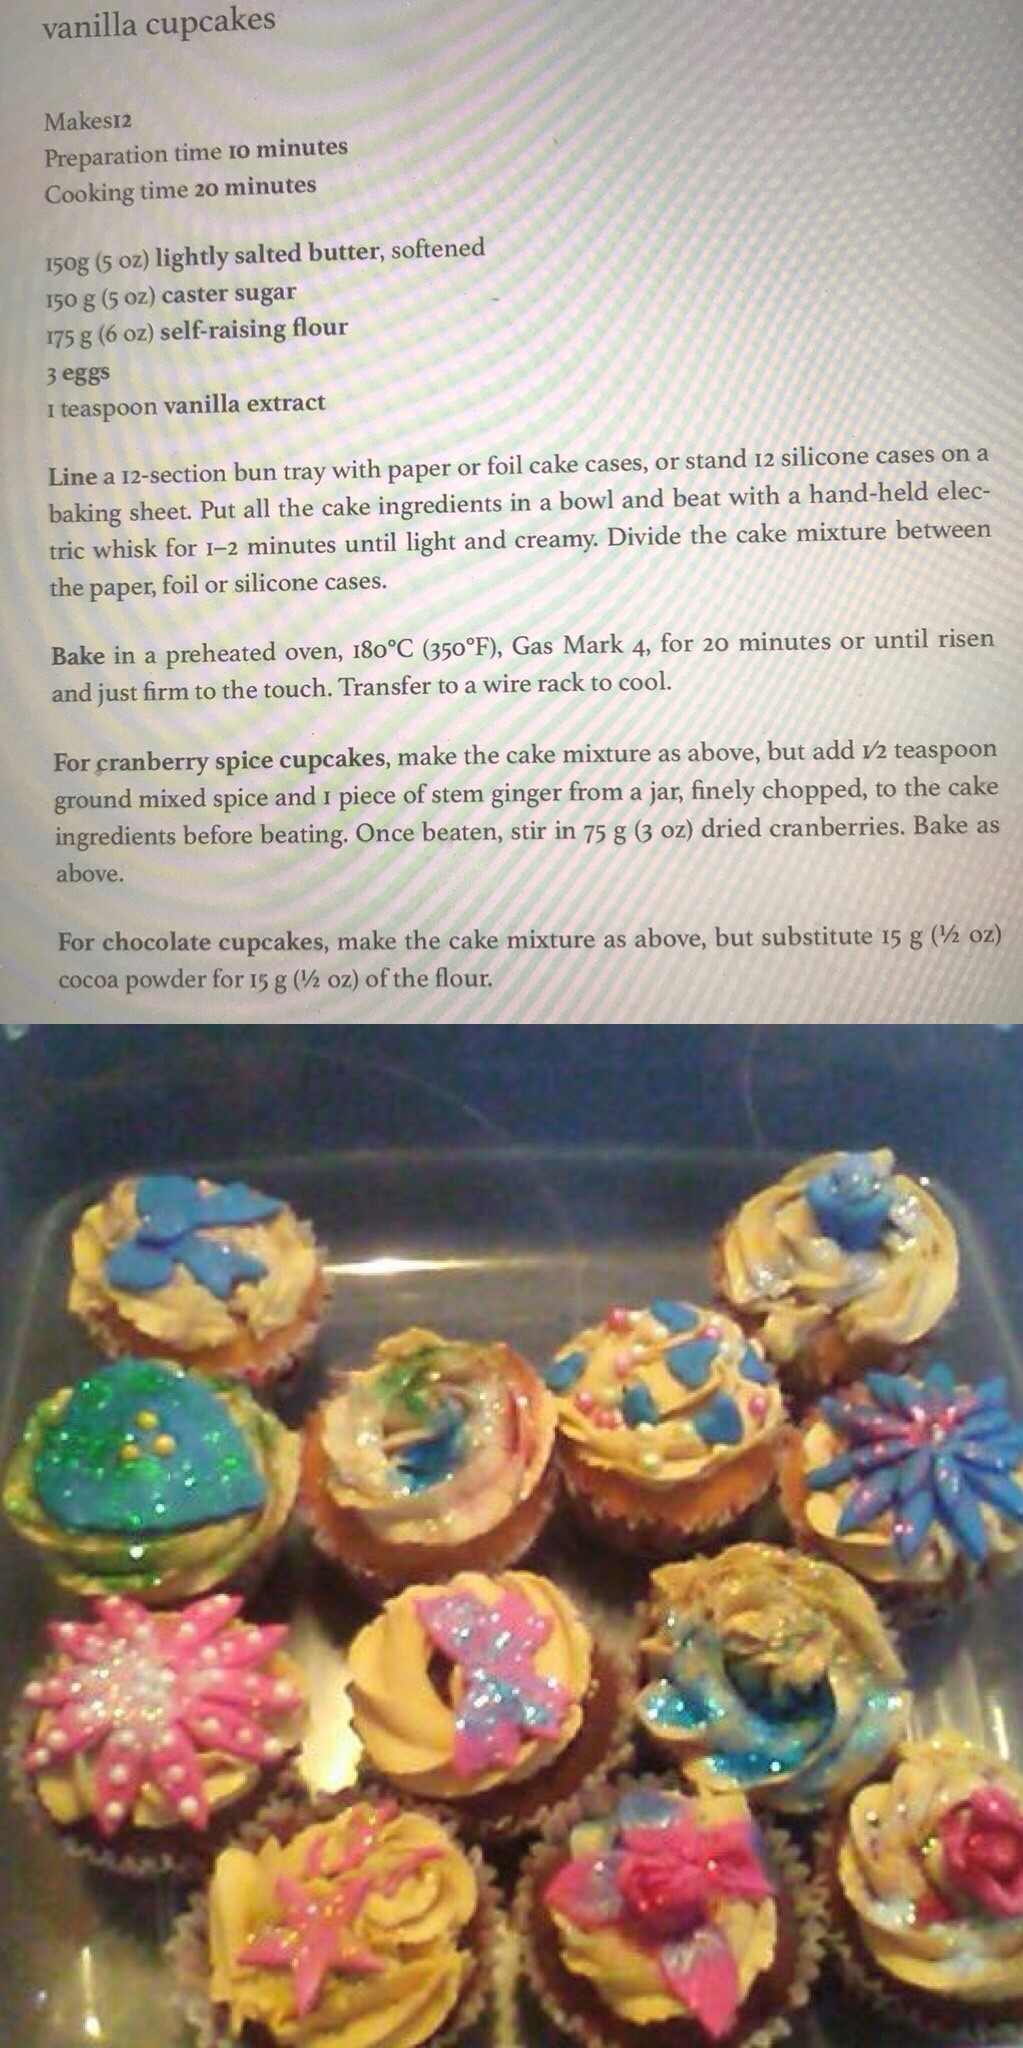 Cupcakes made by children